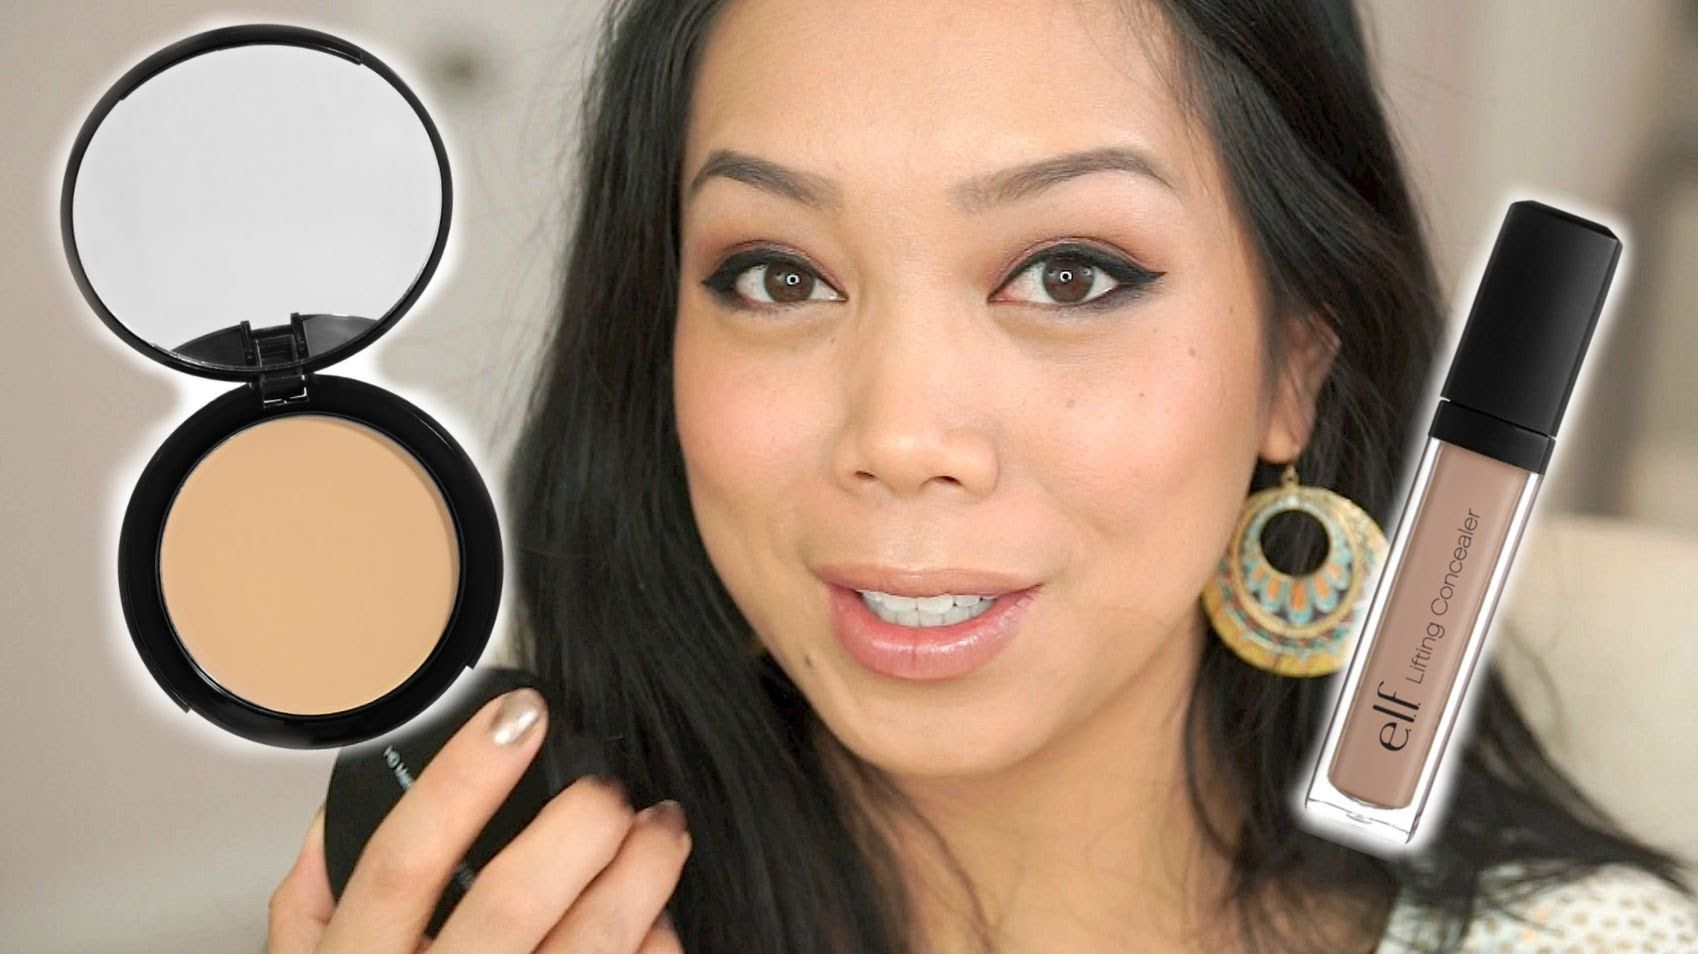 Pin on YouTube Makeup Tips/Tutorial Videos